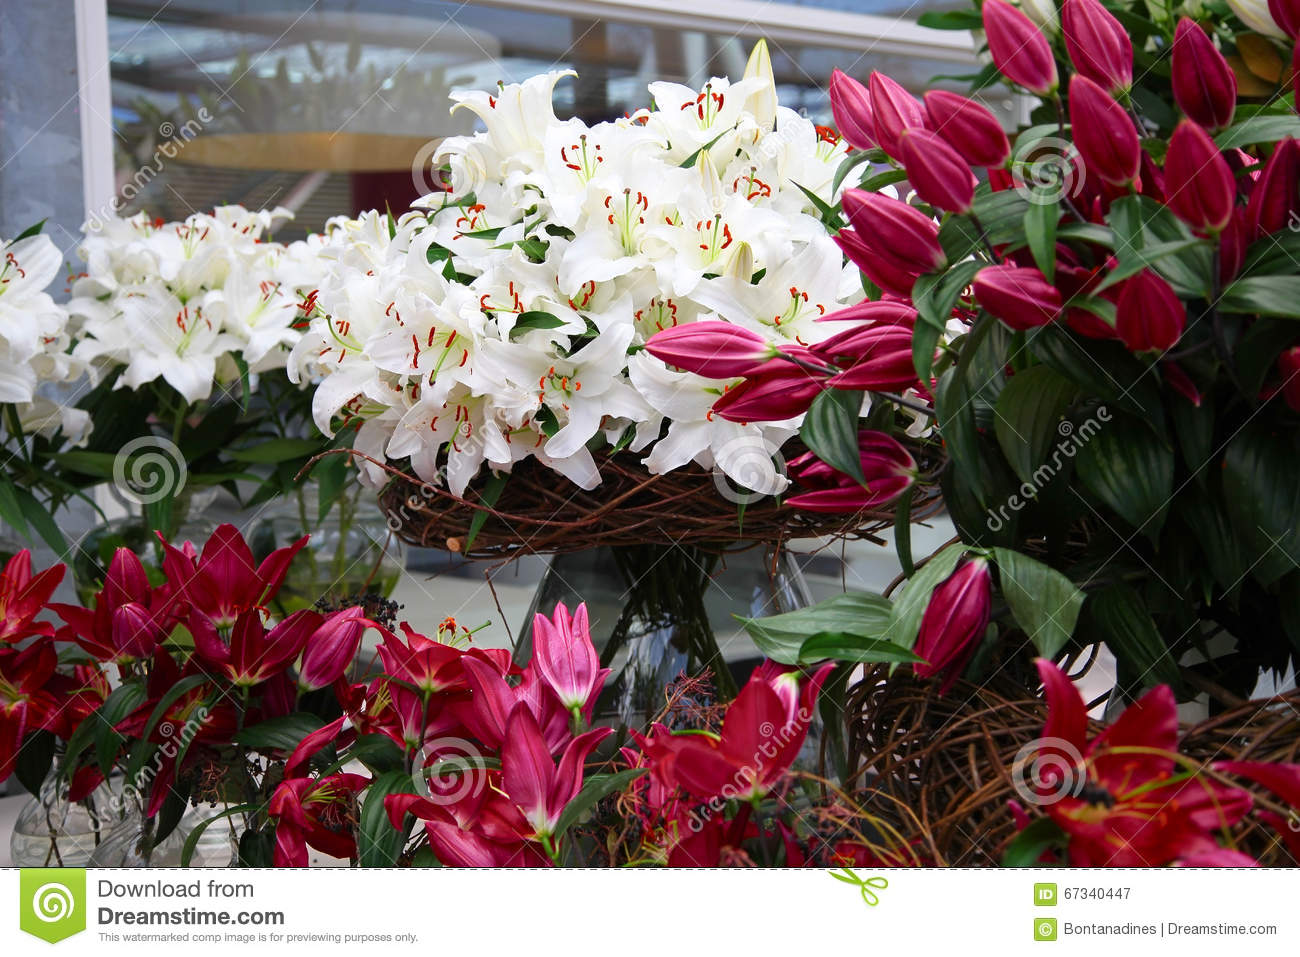 Bouquet Of Lilies In A Glass Vase With Wicker Basket In A Flower